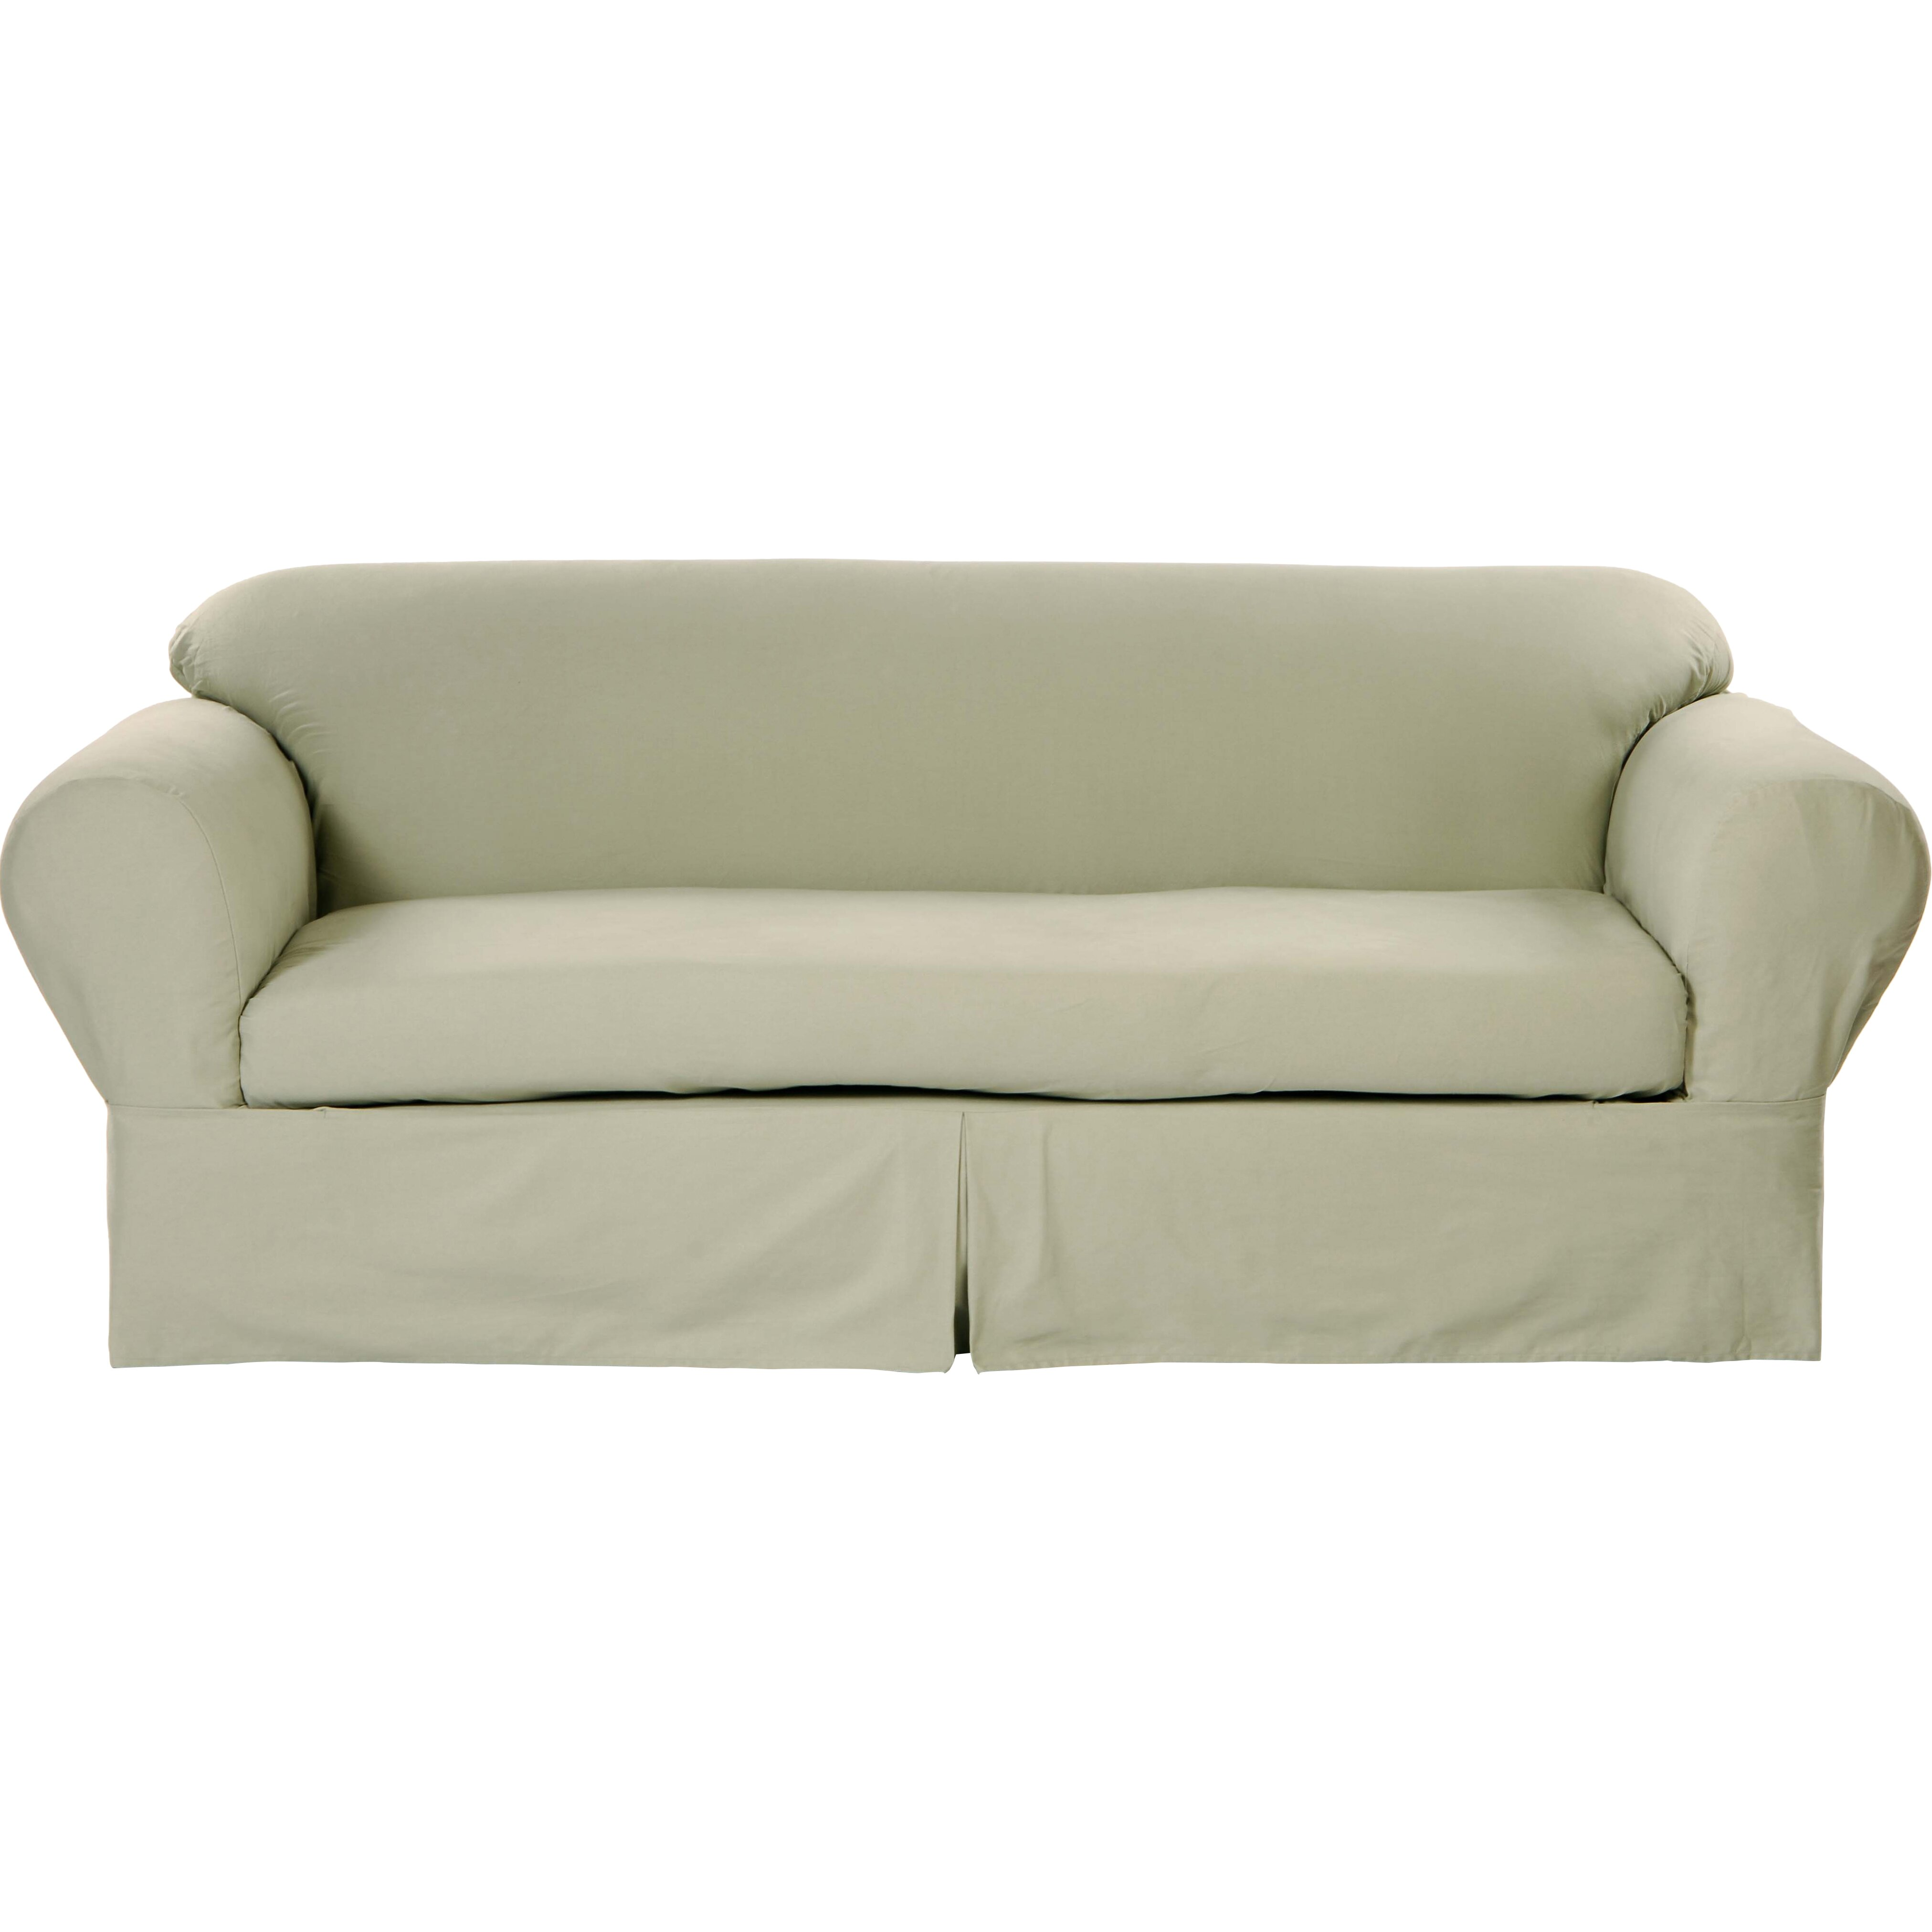 Slipcovers For Sofas With Cushions Separate Good Slipcovers For